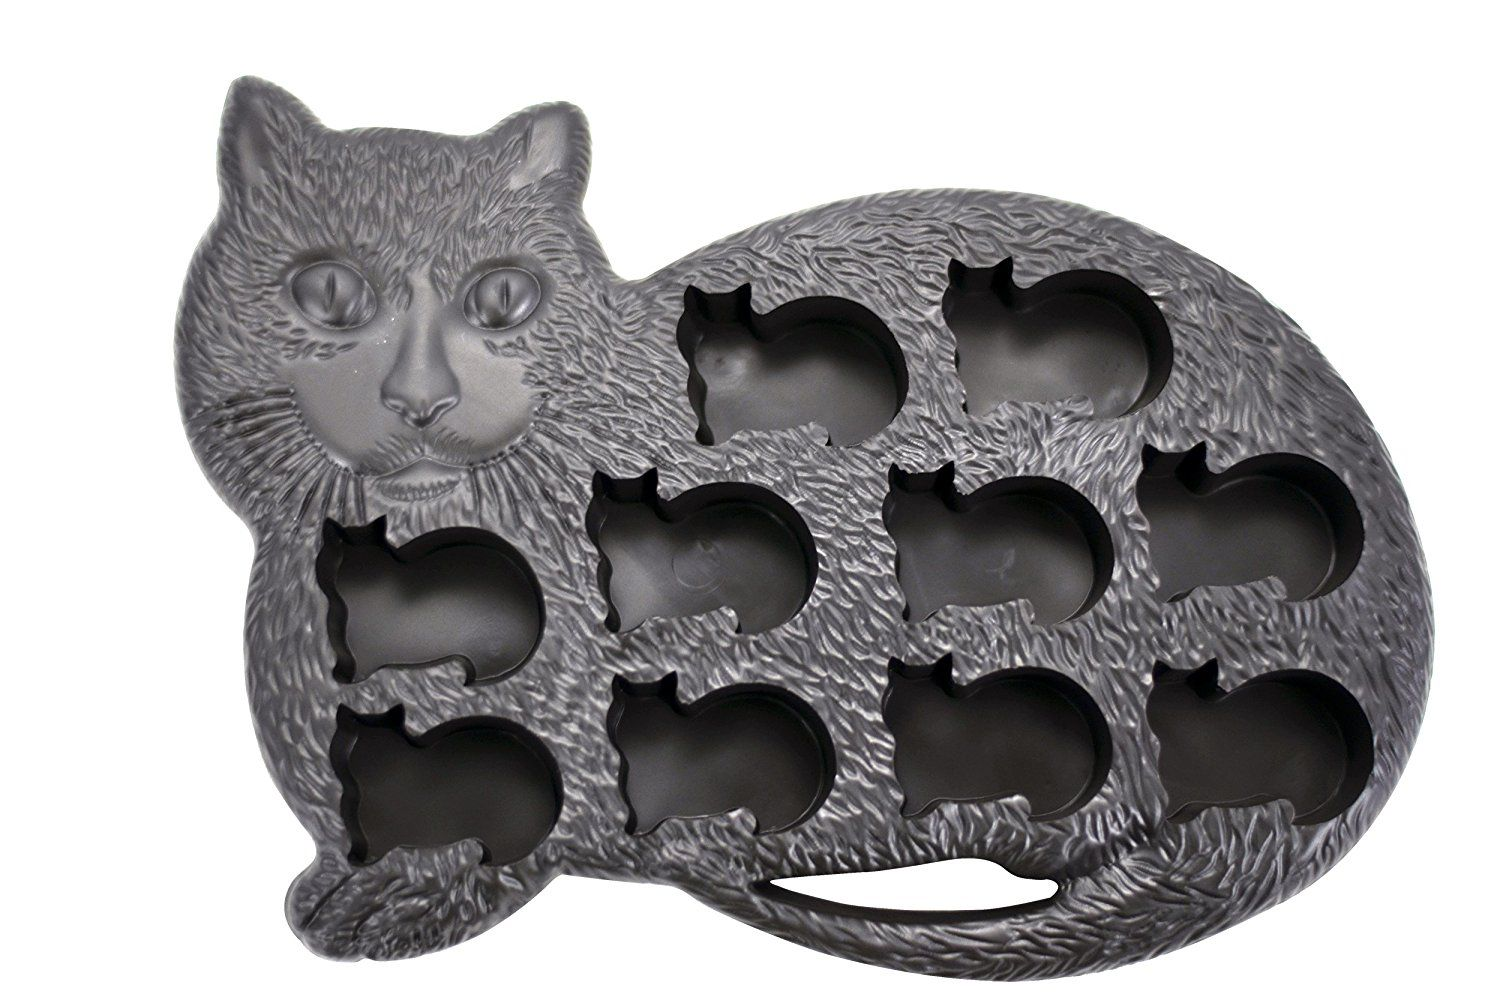 Black Rubber Cat With Baby Kitten Ice Cube Tray Mold Gift Guide For The Cat Lover For The Animal L Cat Ice Cube Tray Ice Cube Tray Molds Cats And Kittens